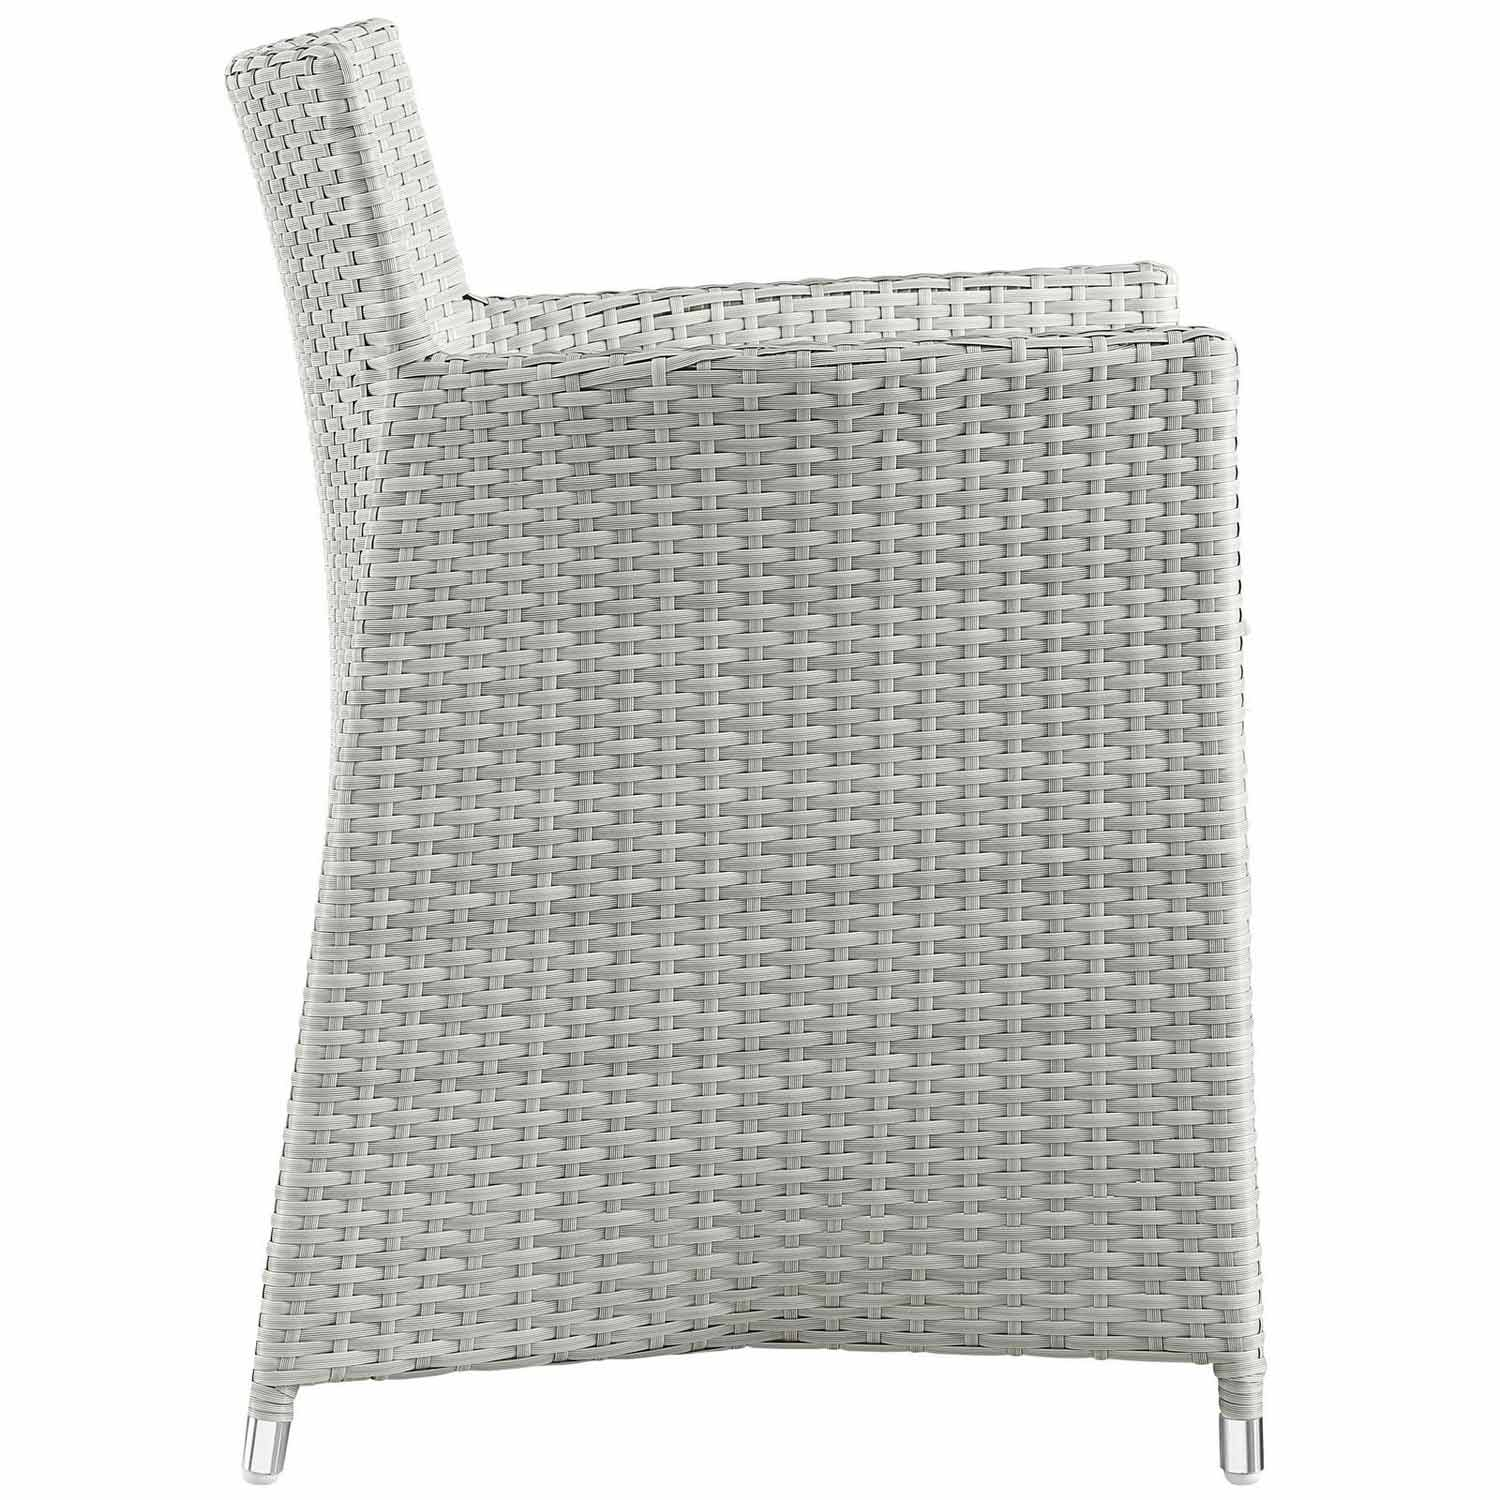 Modway Junction Armchair Outdoor Patio Wicker Set of 2 - Gray/White